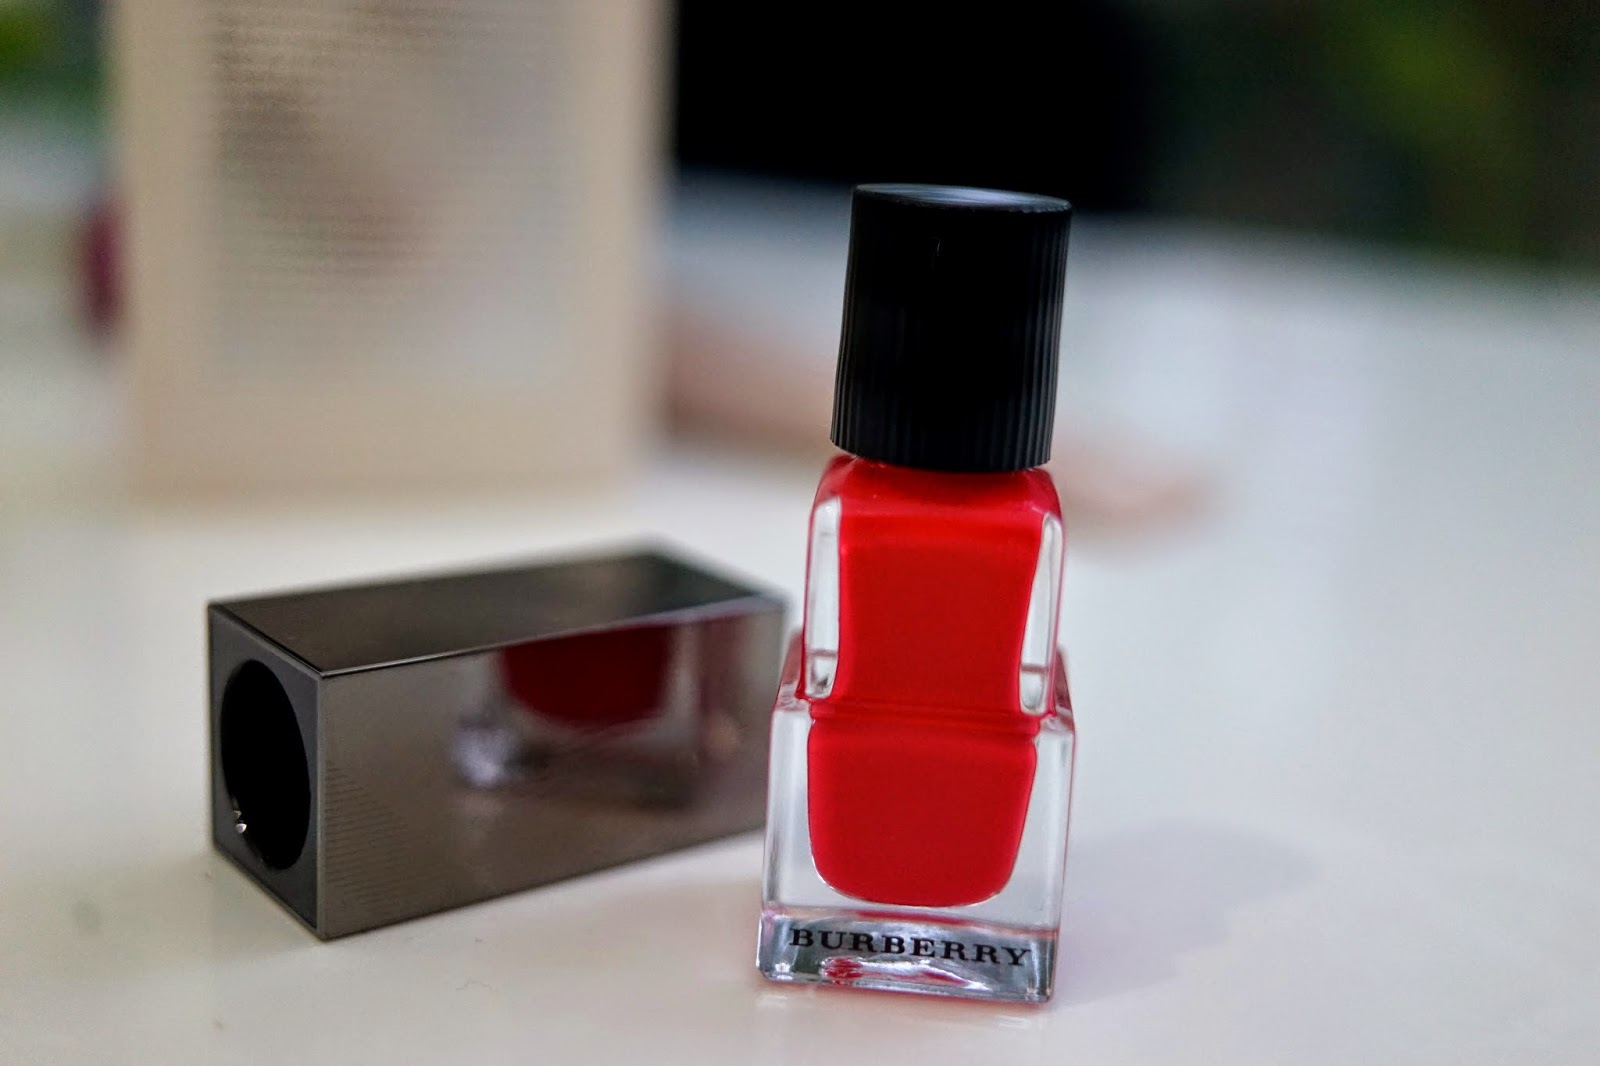 Burberry nail varnish